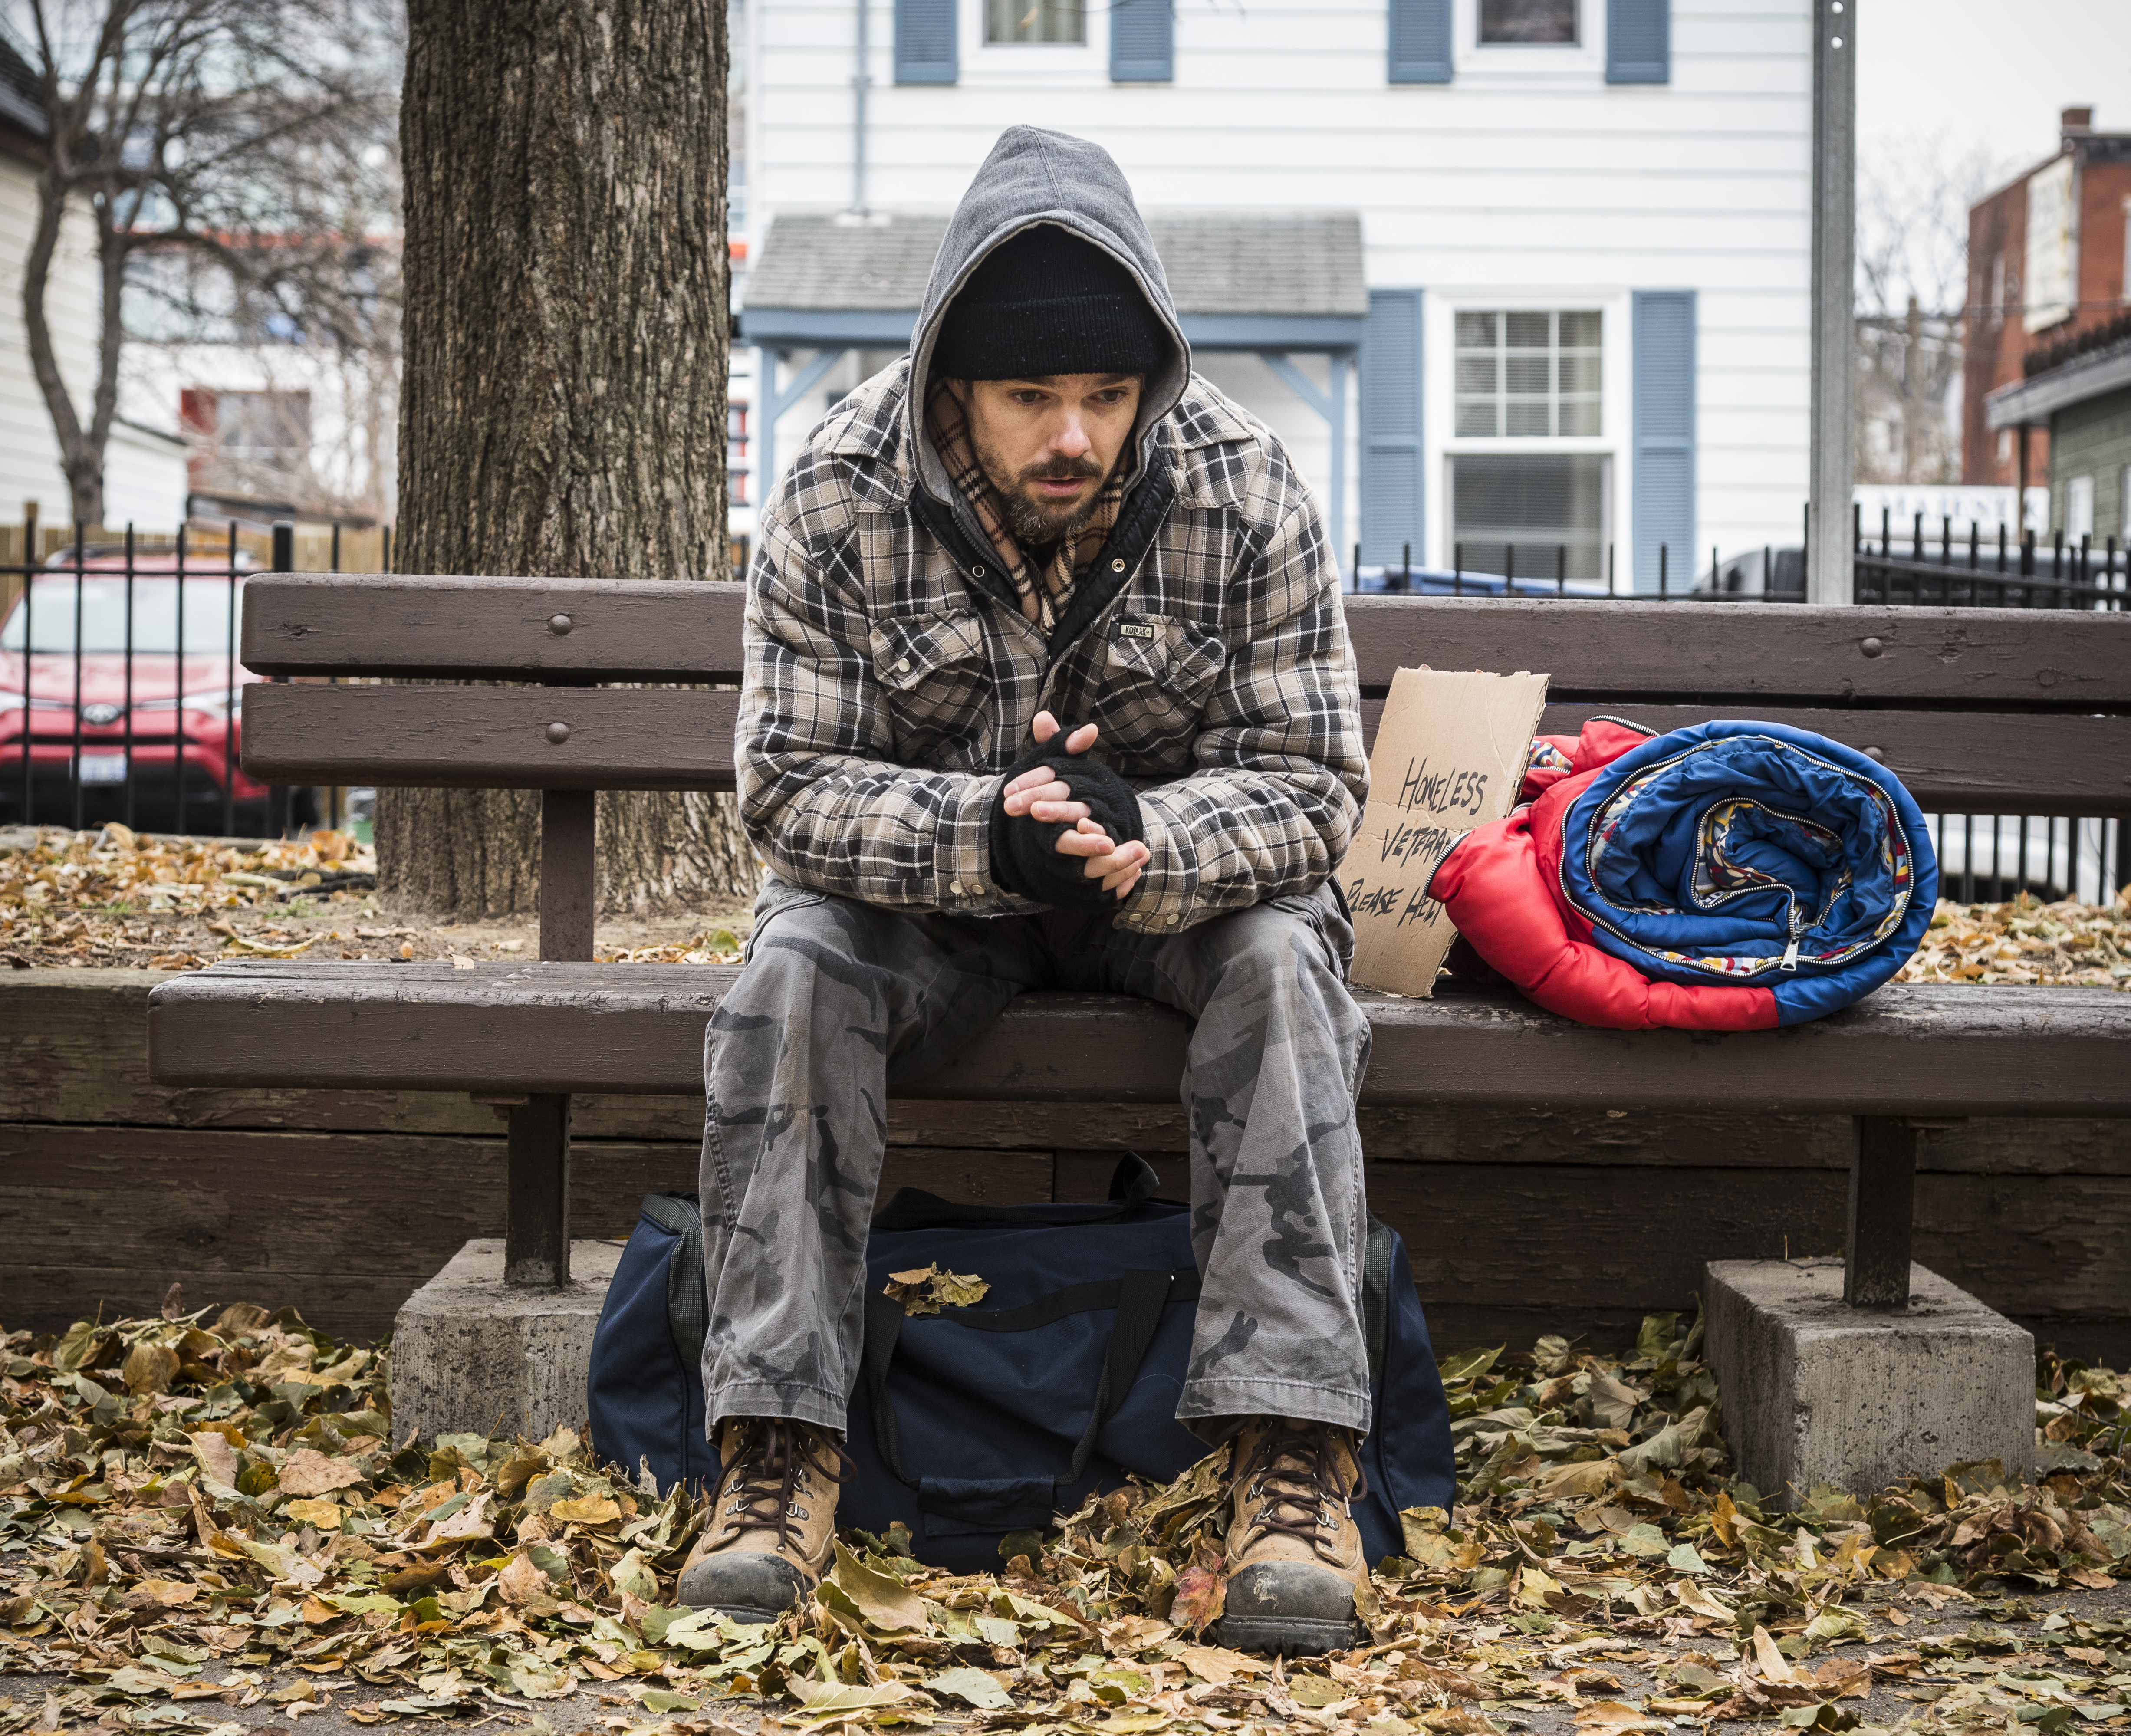 Homeless veteran sits on a bench in a park.